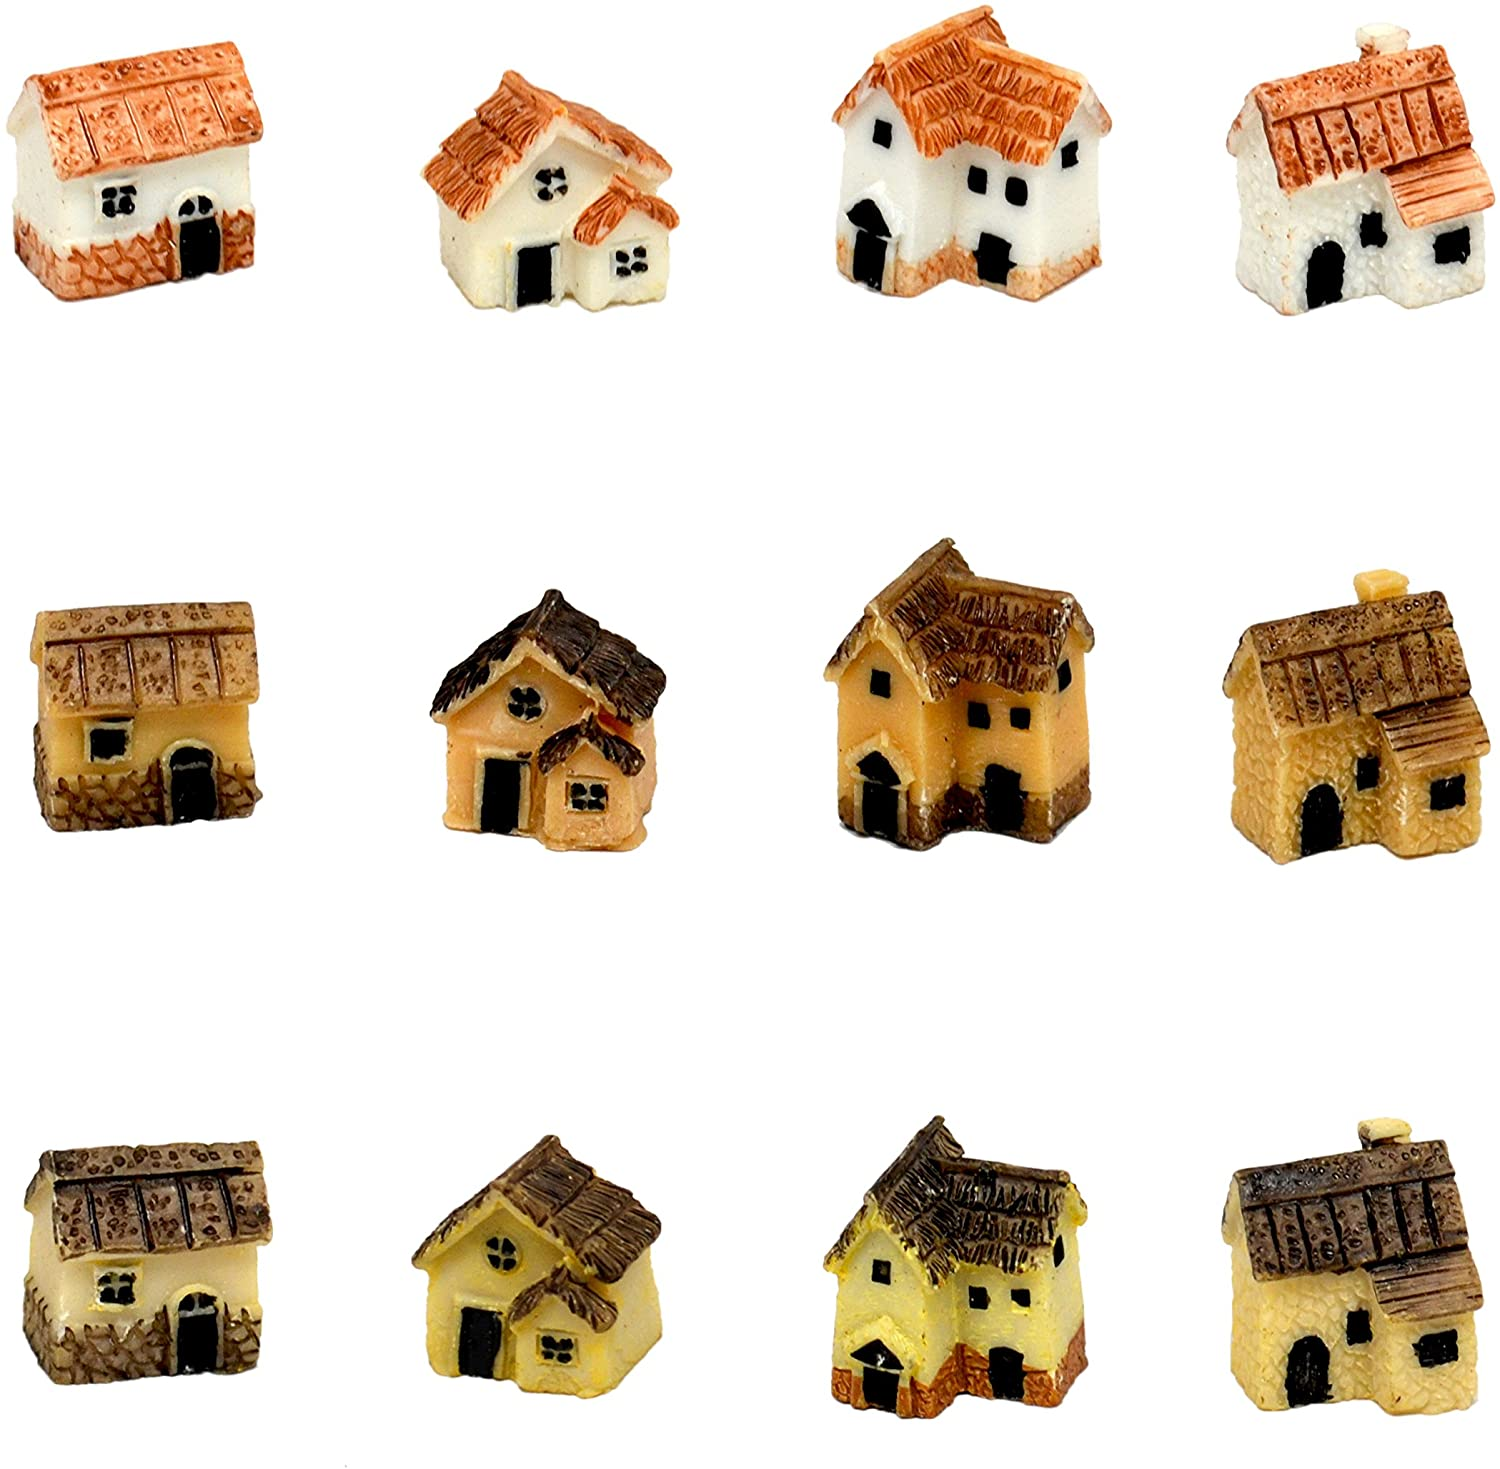 Pixie Glare Fairy Garden Miniature Micro Village Stone Houses 12 Pack. About 1 INCH Each - 12 Pack